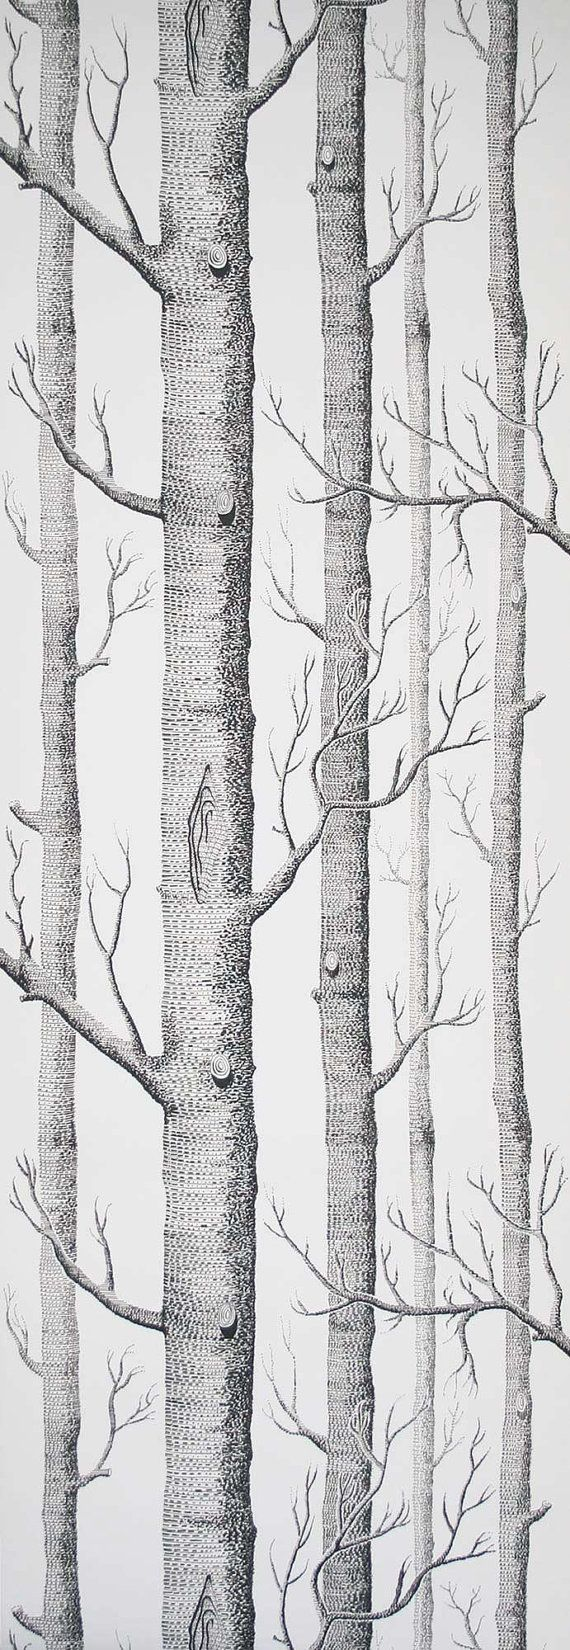 Cole and Son Wallpaper Woods Black on White ONE METRE by romolly